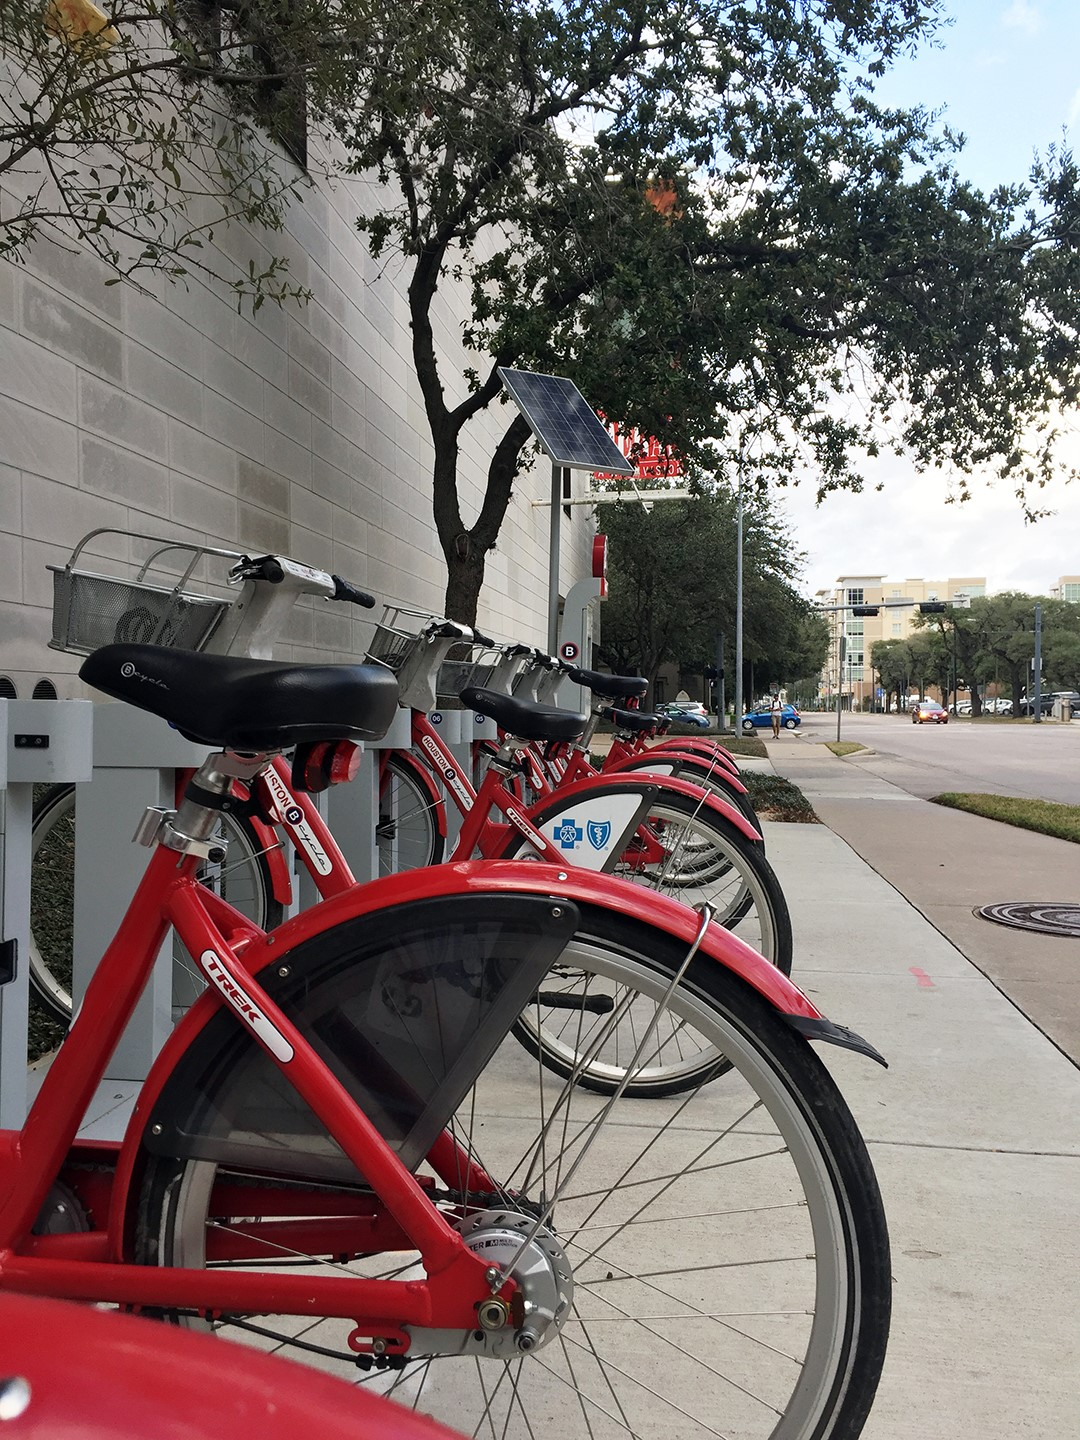 b-cycle at the mfah